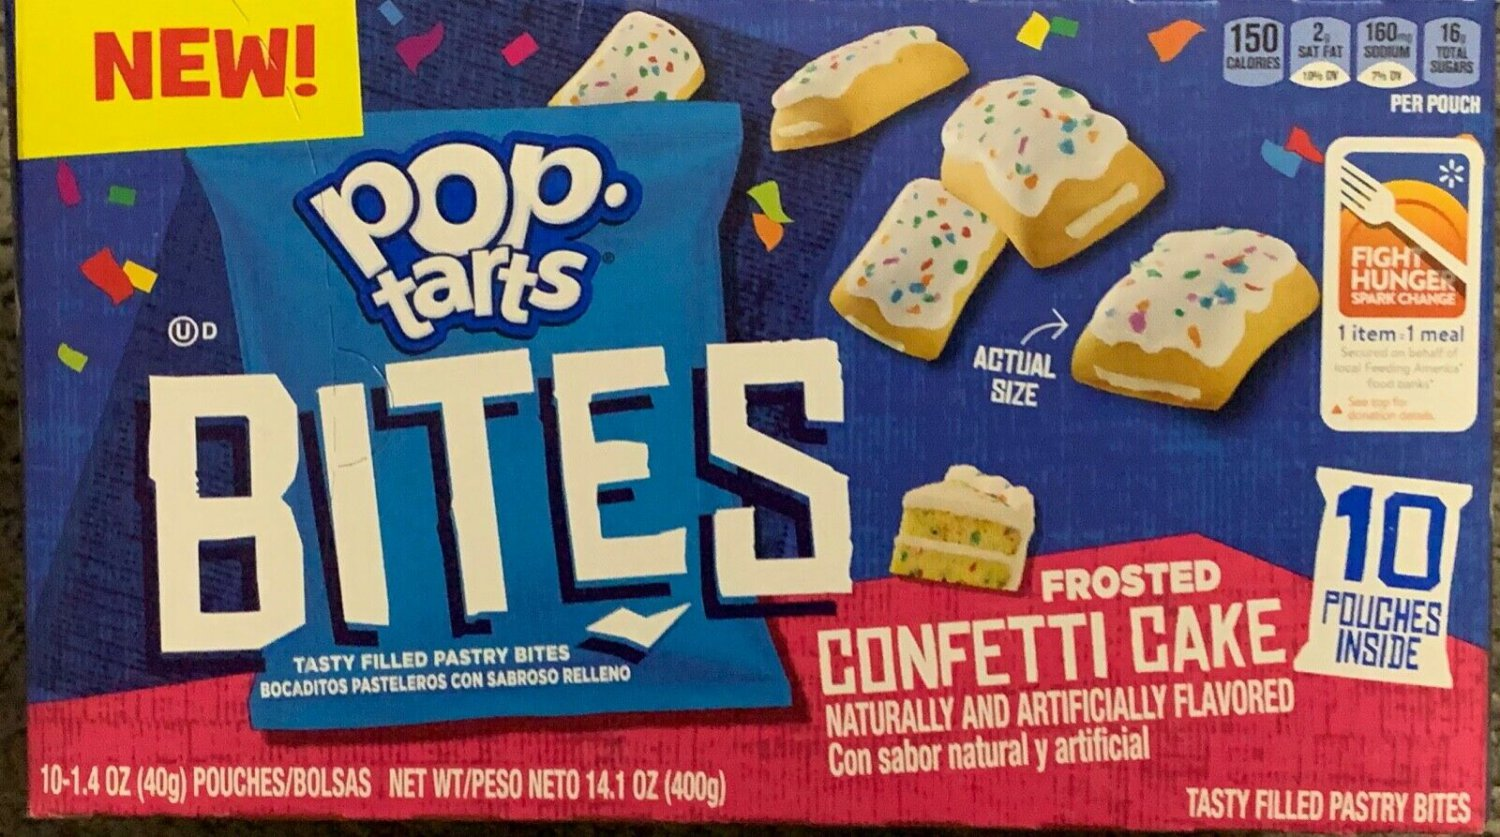 POP TARTS BITES FROSTED CONFETTI CAKE 14.1 OZ (400g) BOX 10 POUCHES INSIDE